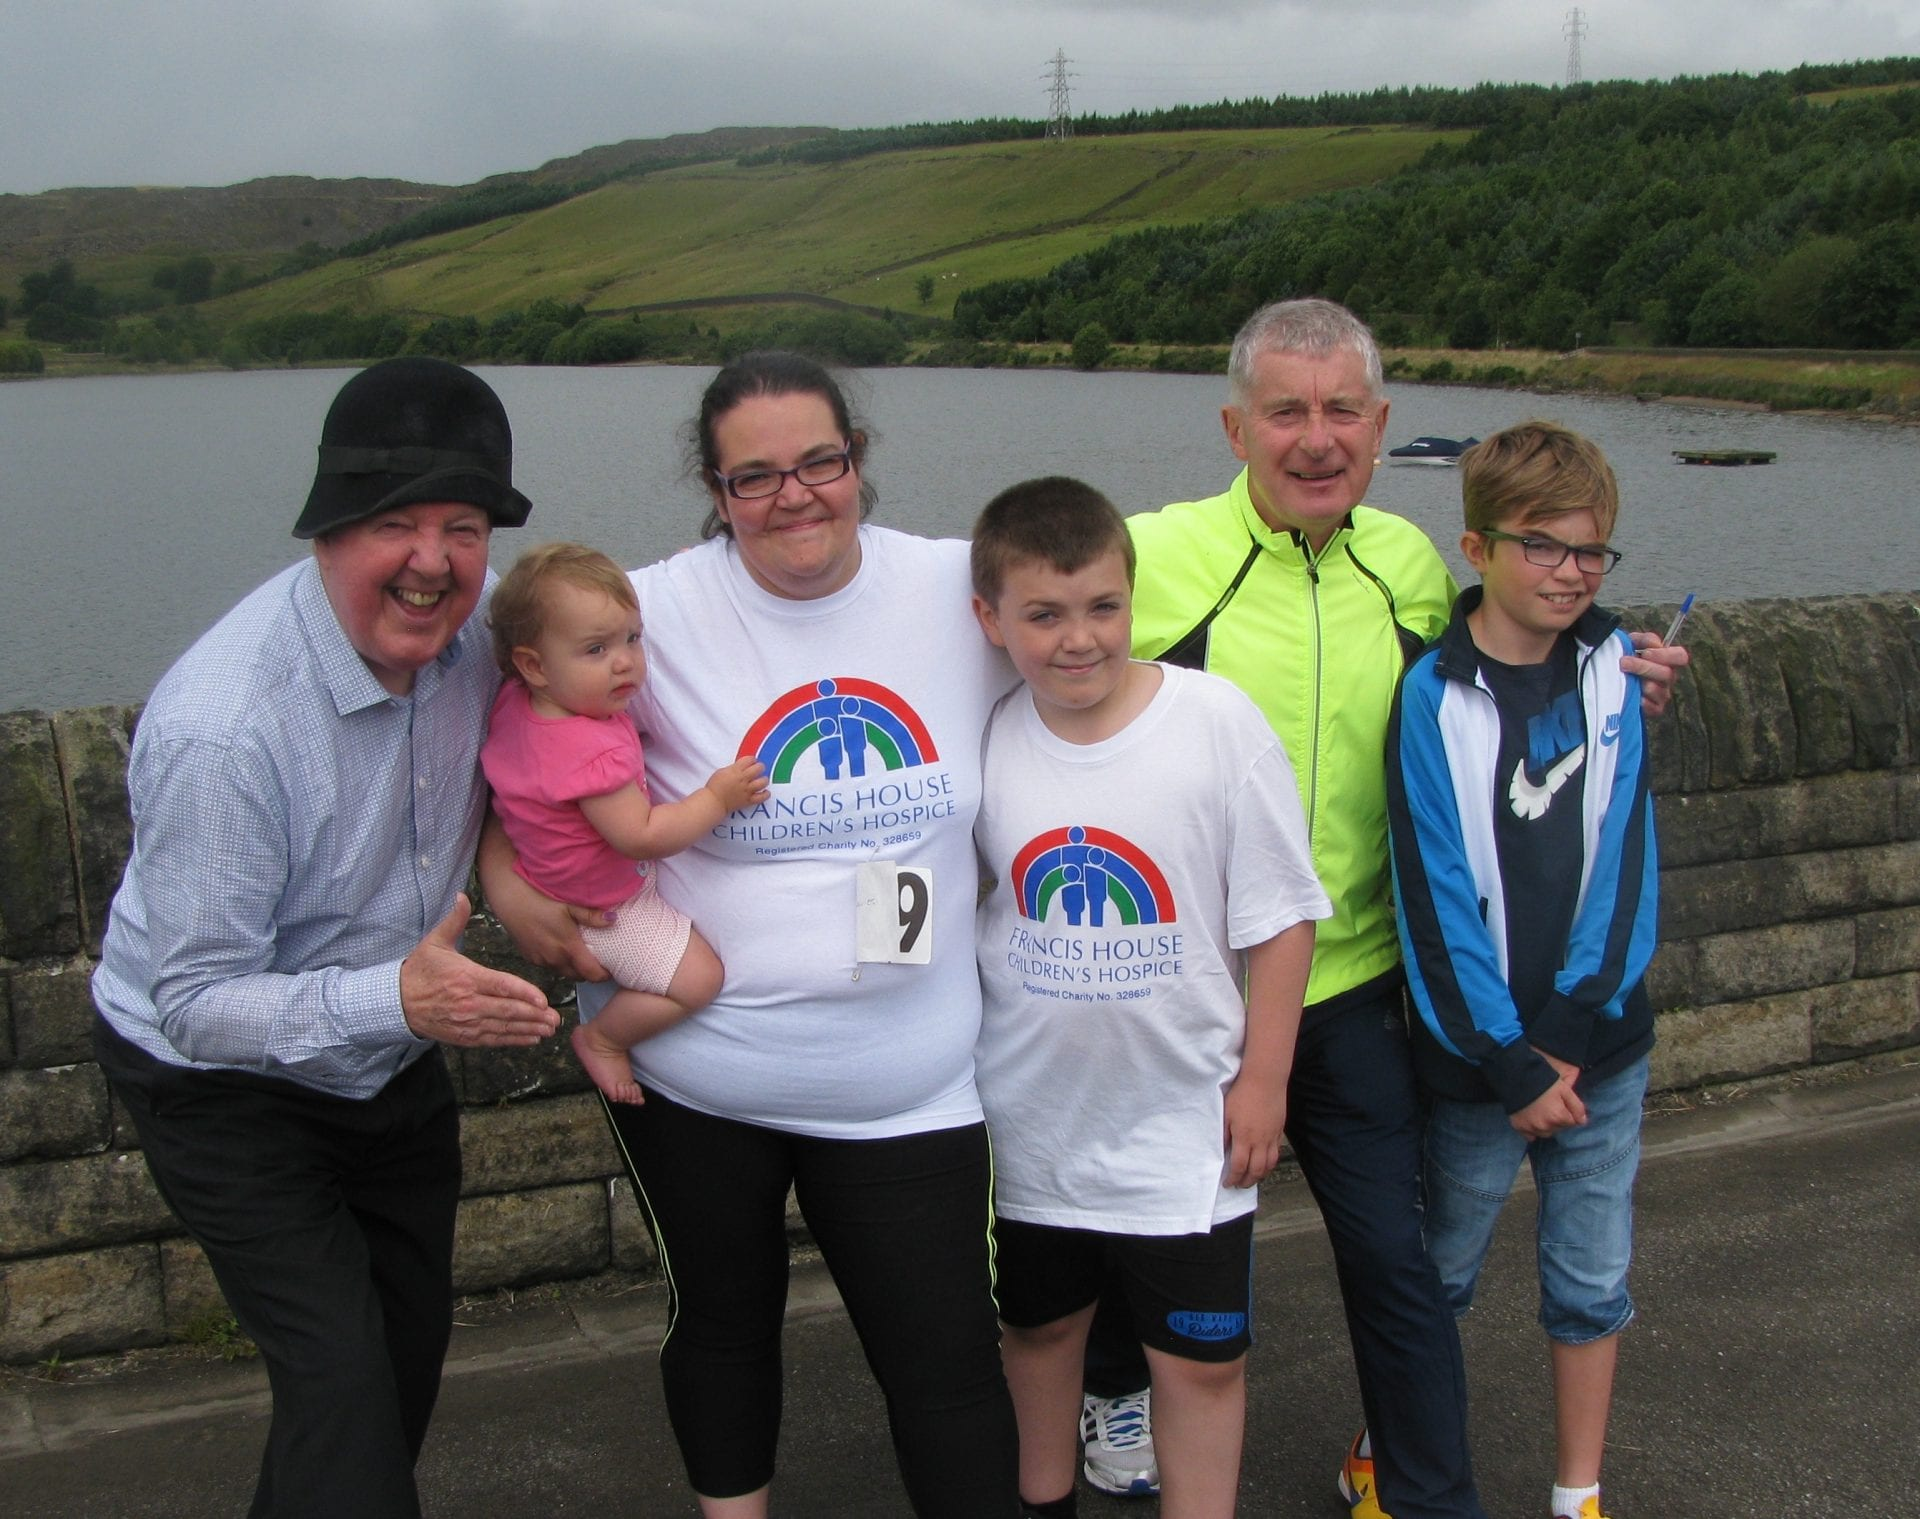 Jimmy Cricket with race organiser Andy O'Sullivan, runner Jo Davies, her two children - Lucas Davies and Lillie Mai Davies - and Daniel Barker at the scene of the fun run near Cowm Reservoir